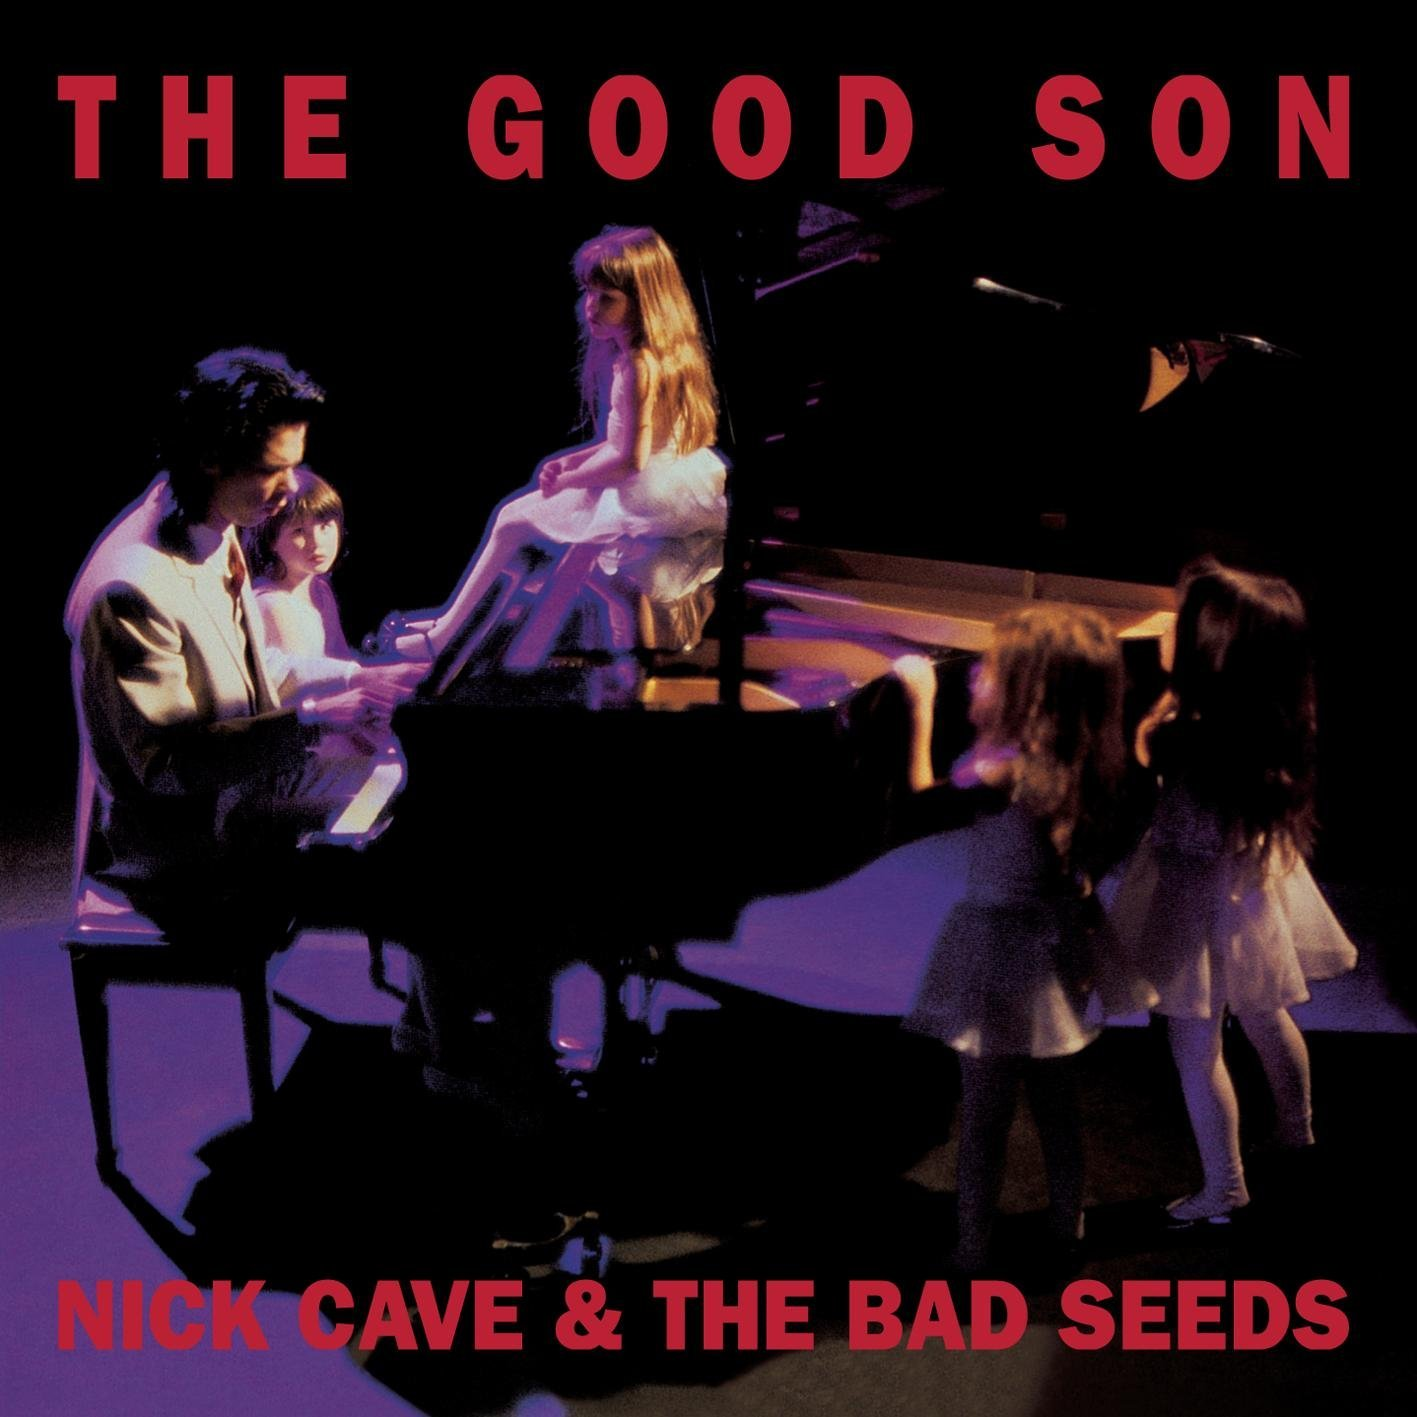 Nick Cave and the Bad Seeds – The Good Son: 11 фактов об альбоме